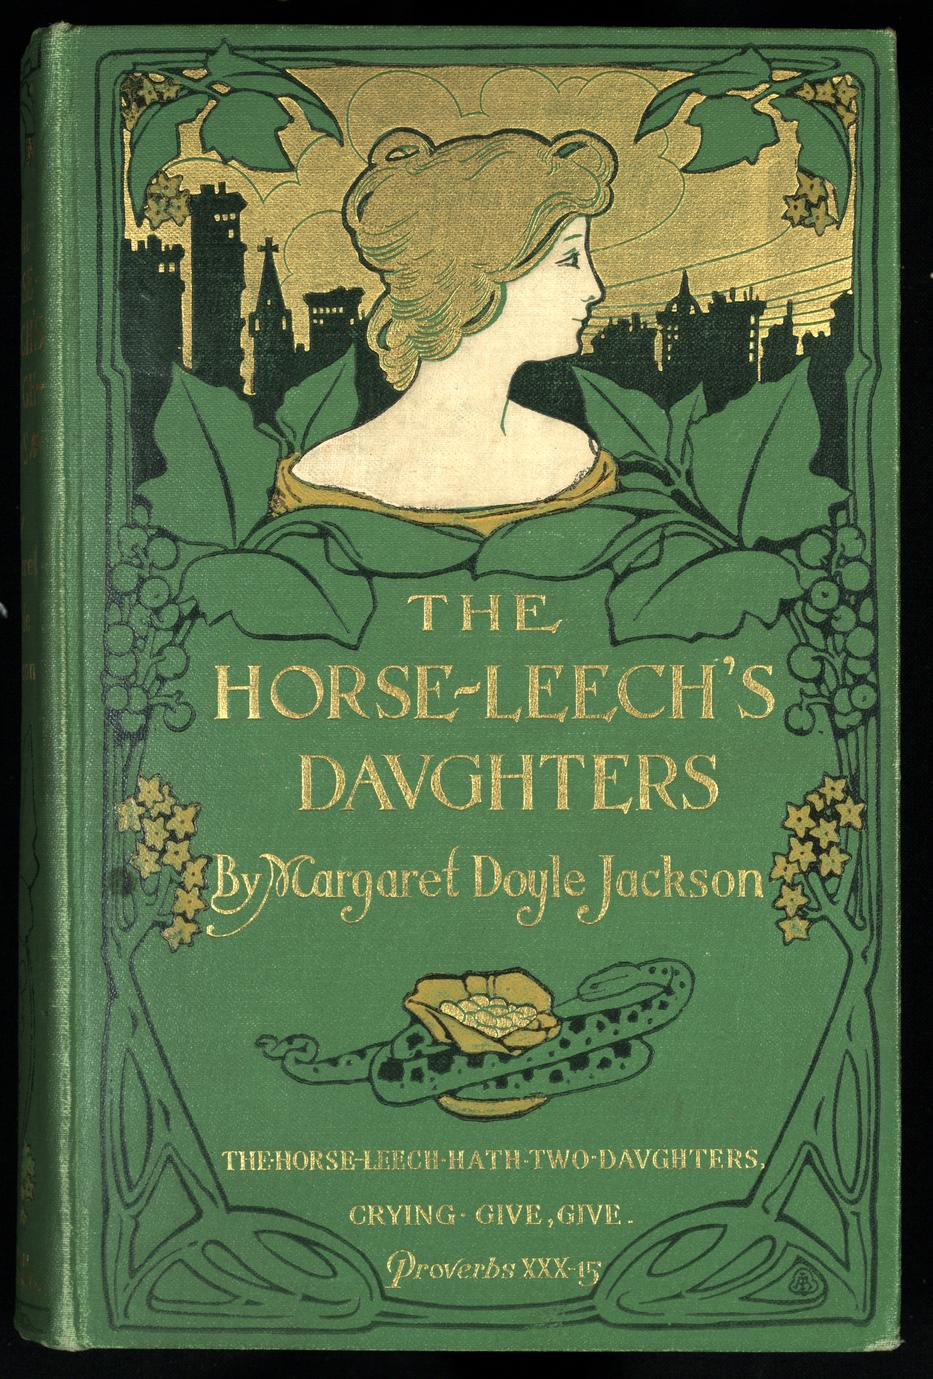 The horse-leech's daughters (1 of 3)